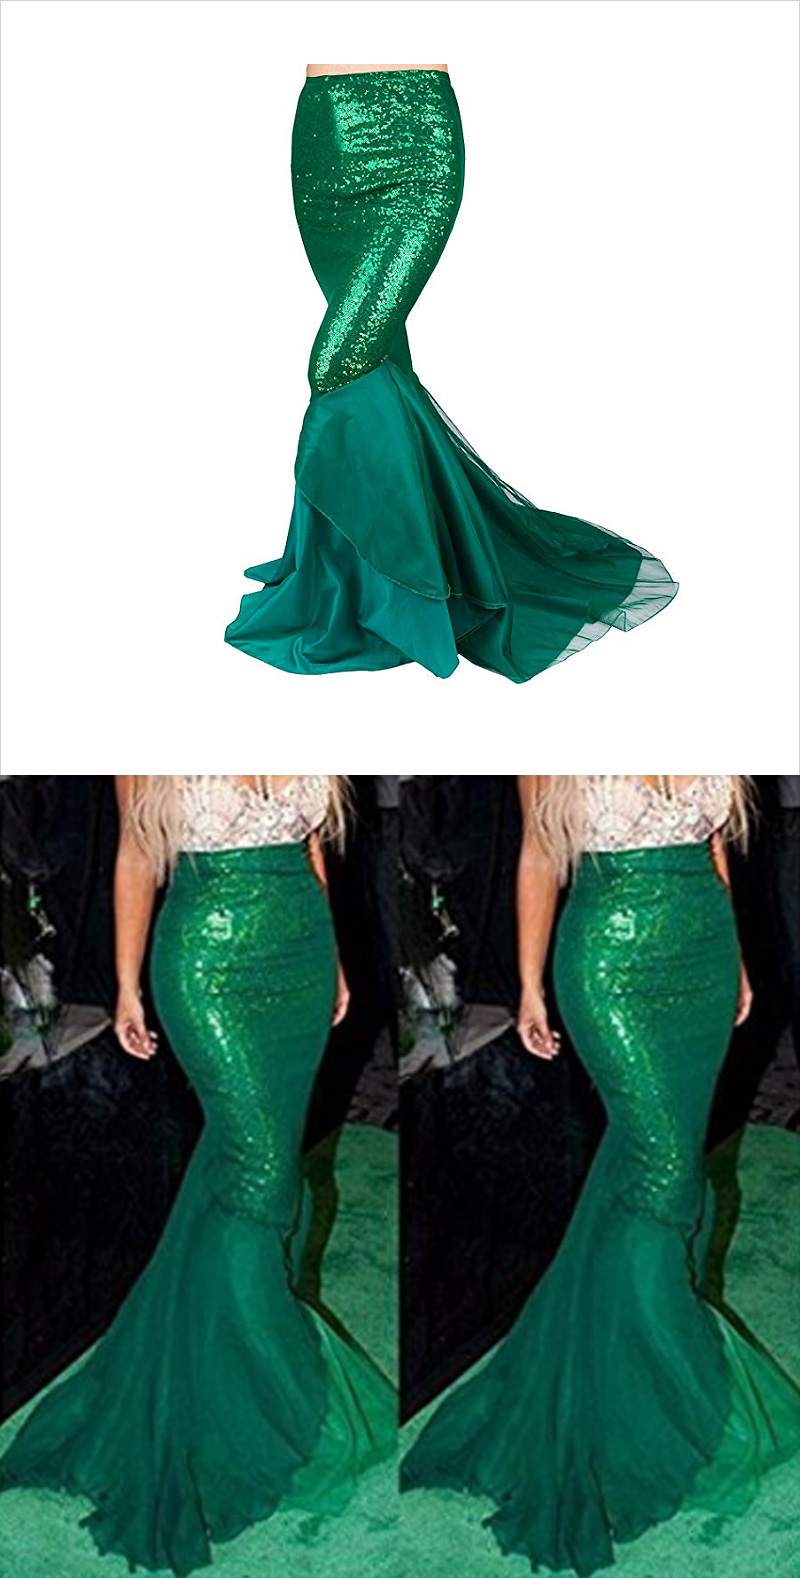 Women's-Mermaid-Tail-Halloween-Costumes